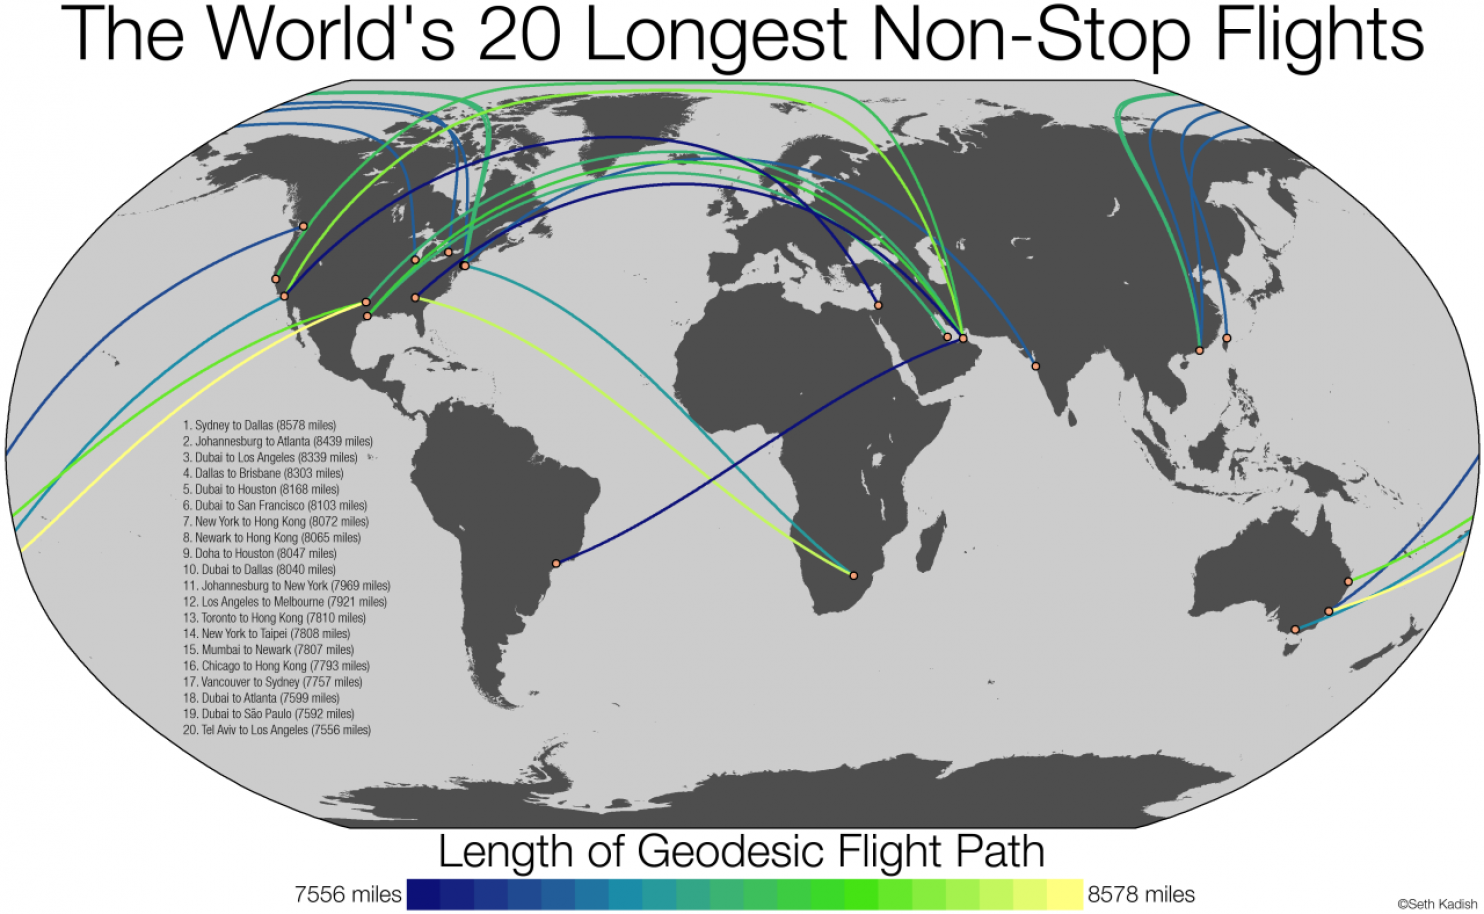 The Worlds Longest Nonstop Flights Mapped Leap Forward Travel - The 14 longest non stop flights in the world